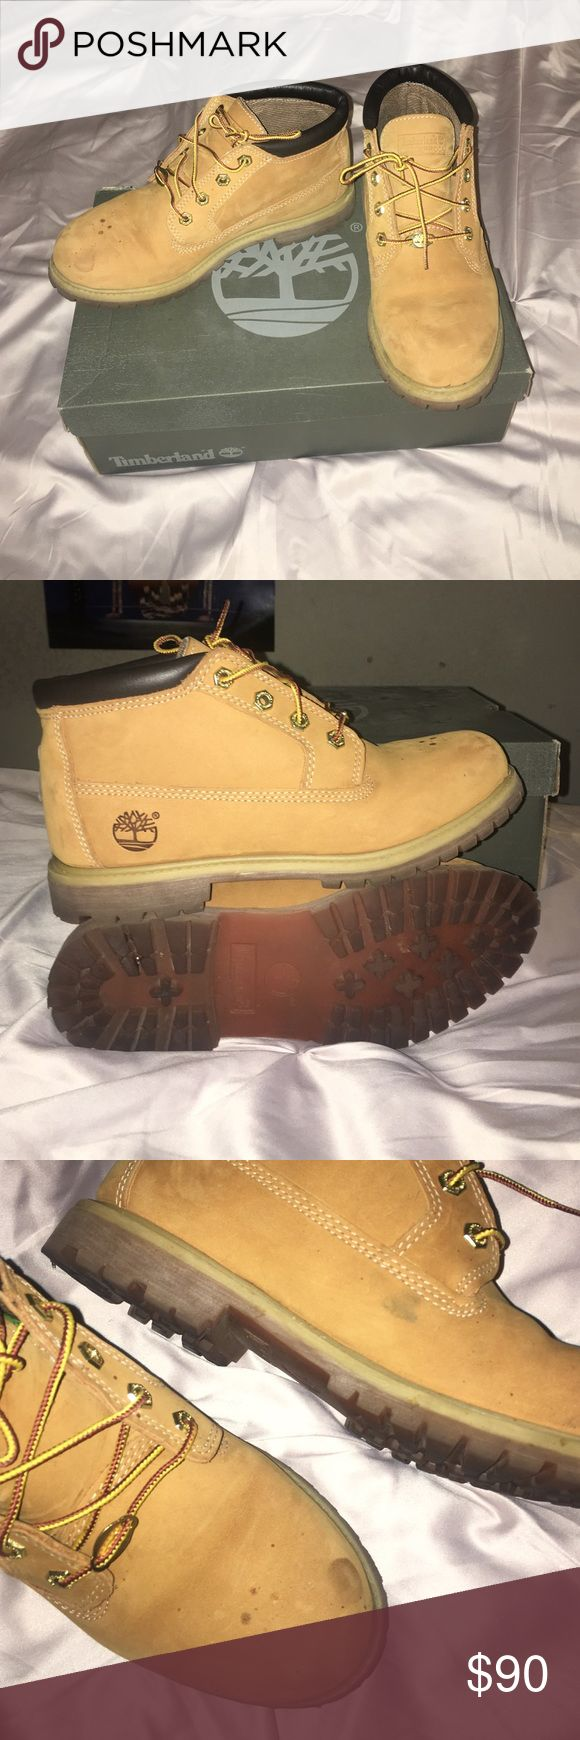 Timberland boots Timbs for sale. In pretty great condition, only been worn for about a months length in time over the course of a year. Some minor spots on the shoes but barely noticeable. Im normally a size 9 and these are 8.5 so shoe size runs a bit big. Timberland Shoes Winter & Rain Boots